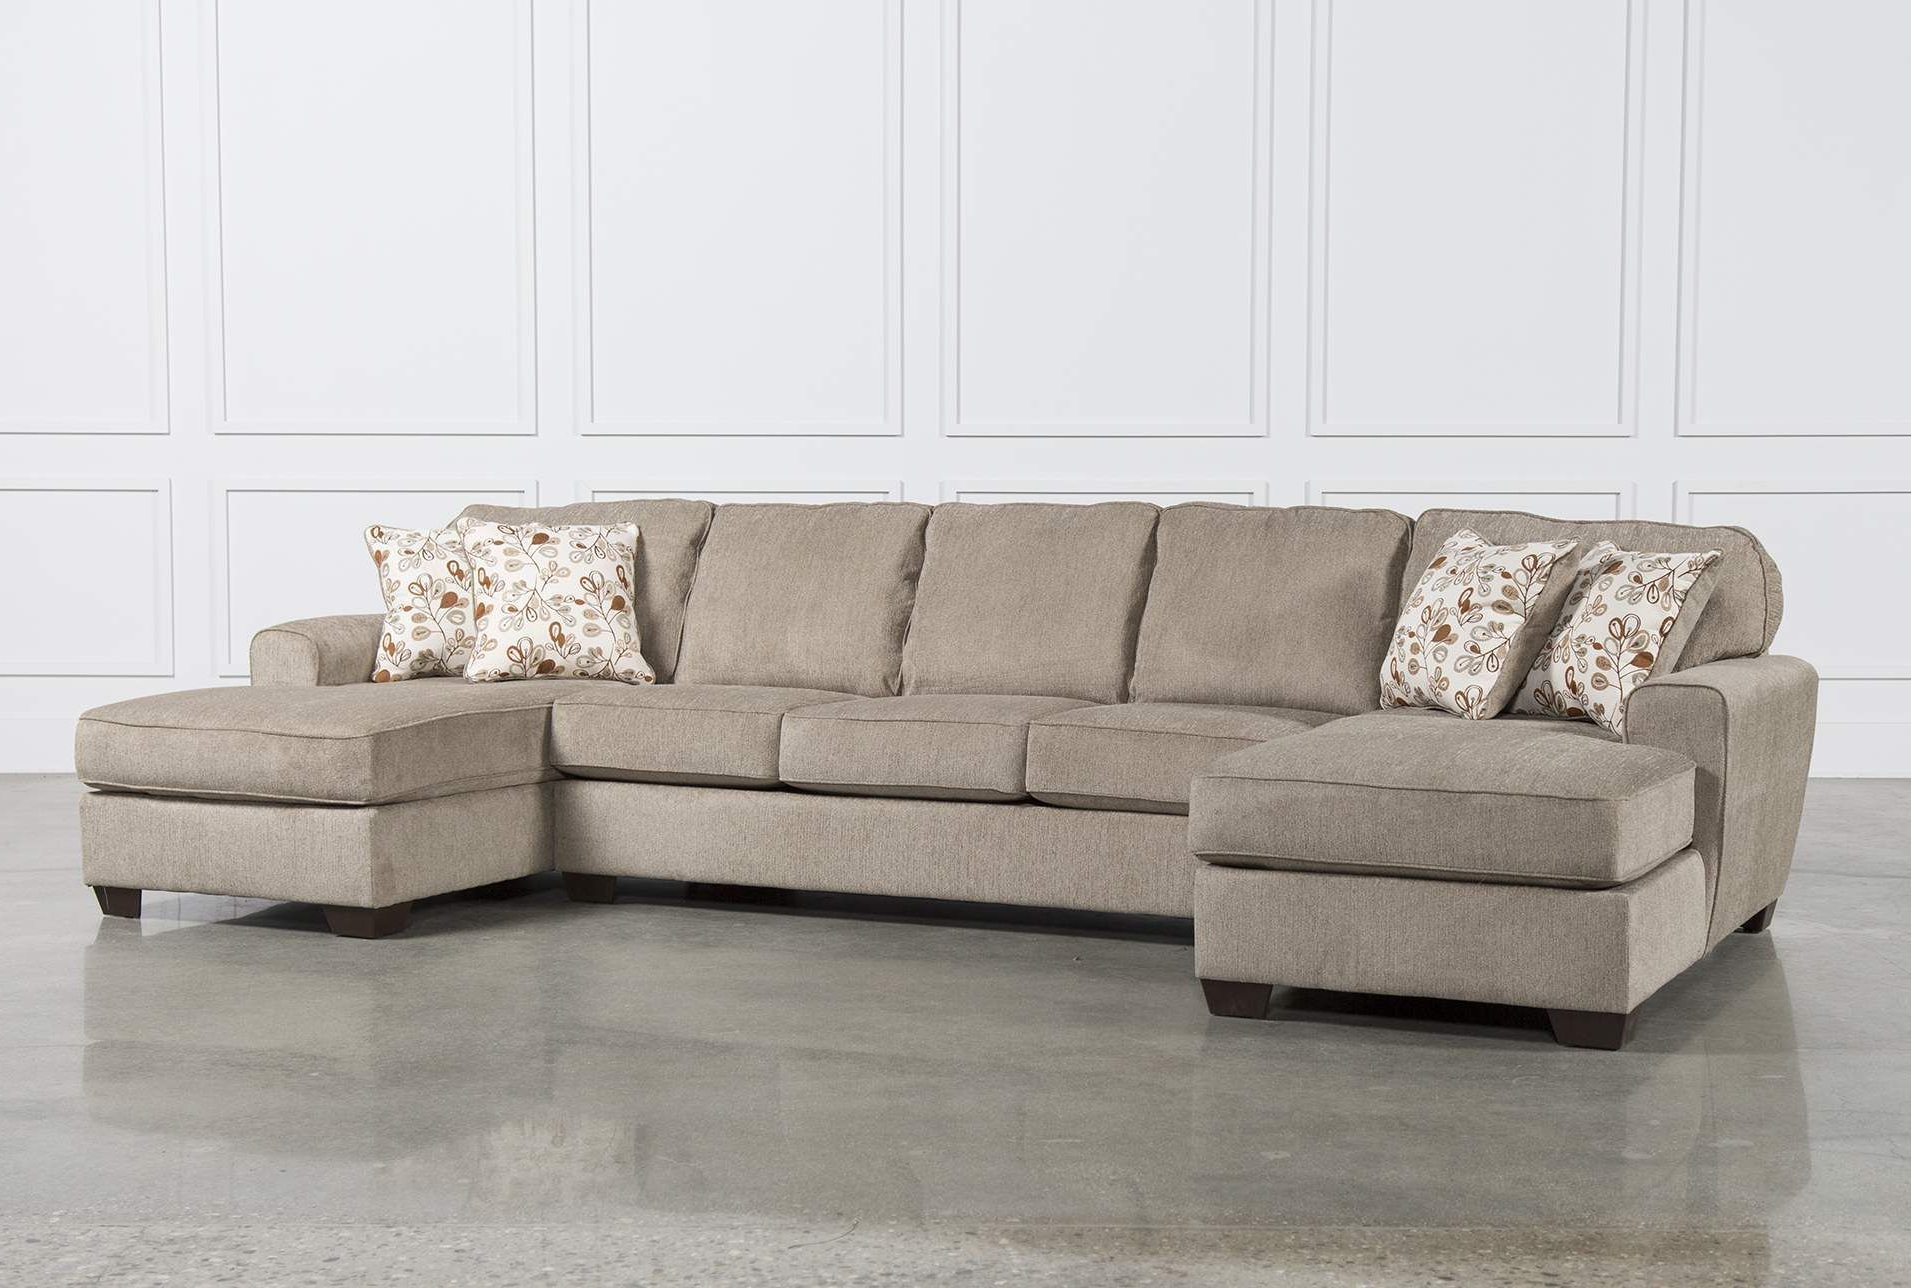 Well Known Malbry Point 3 Piece Sectionals With Raf Chaise Intended For Ashley Patola Park 3 Piece Sectional W/2 Corner Chaises, Brown (View 3 of 20)